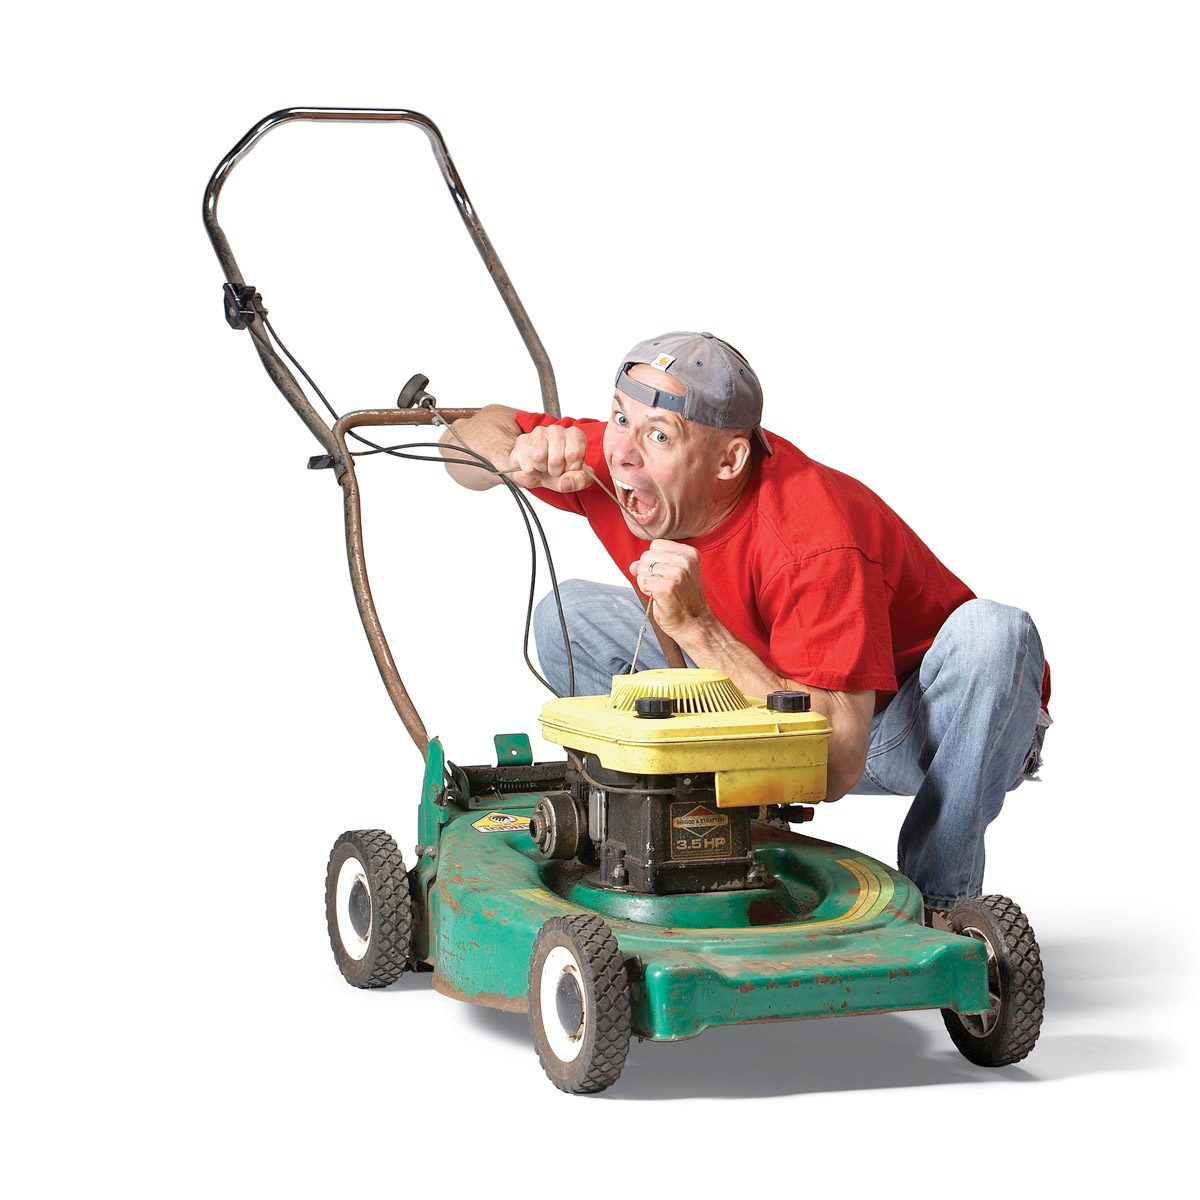 electric start lawn mower